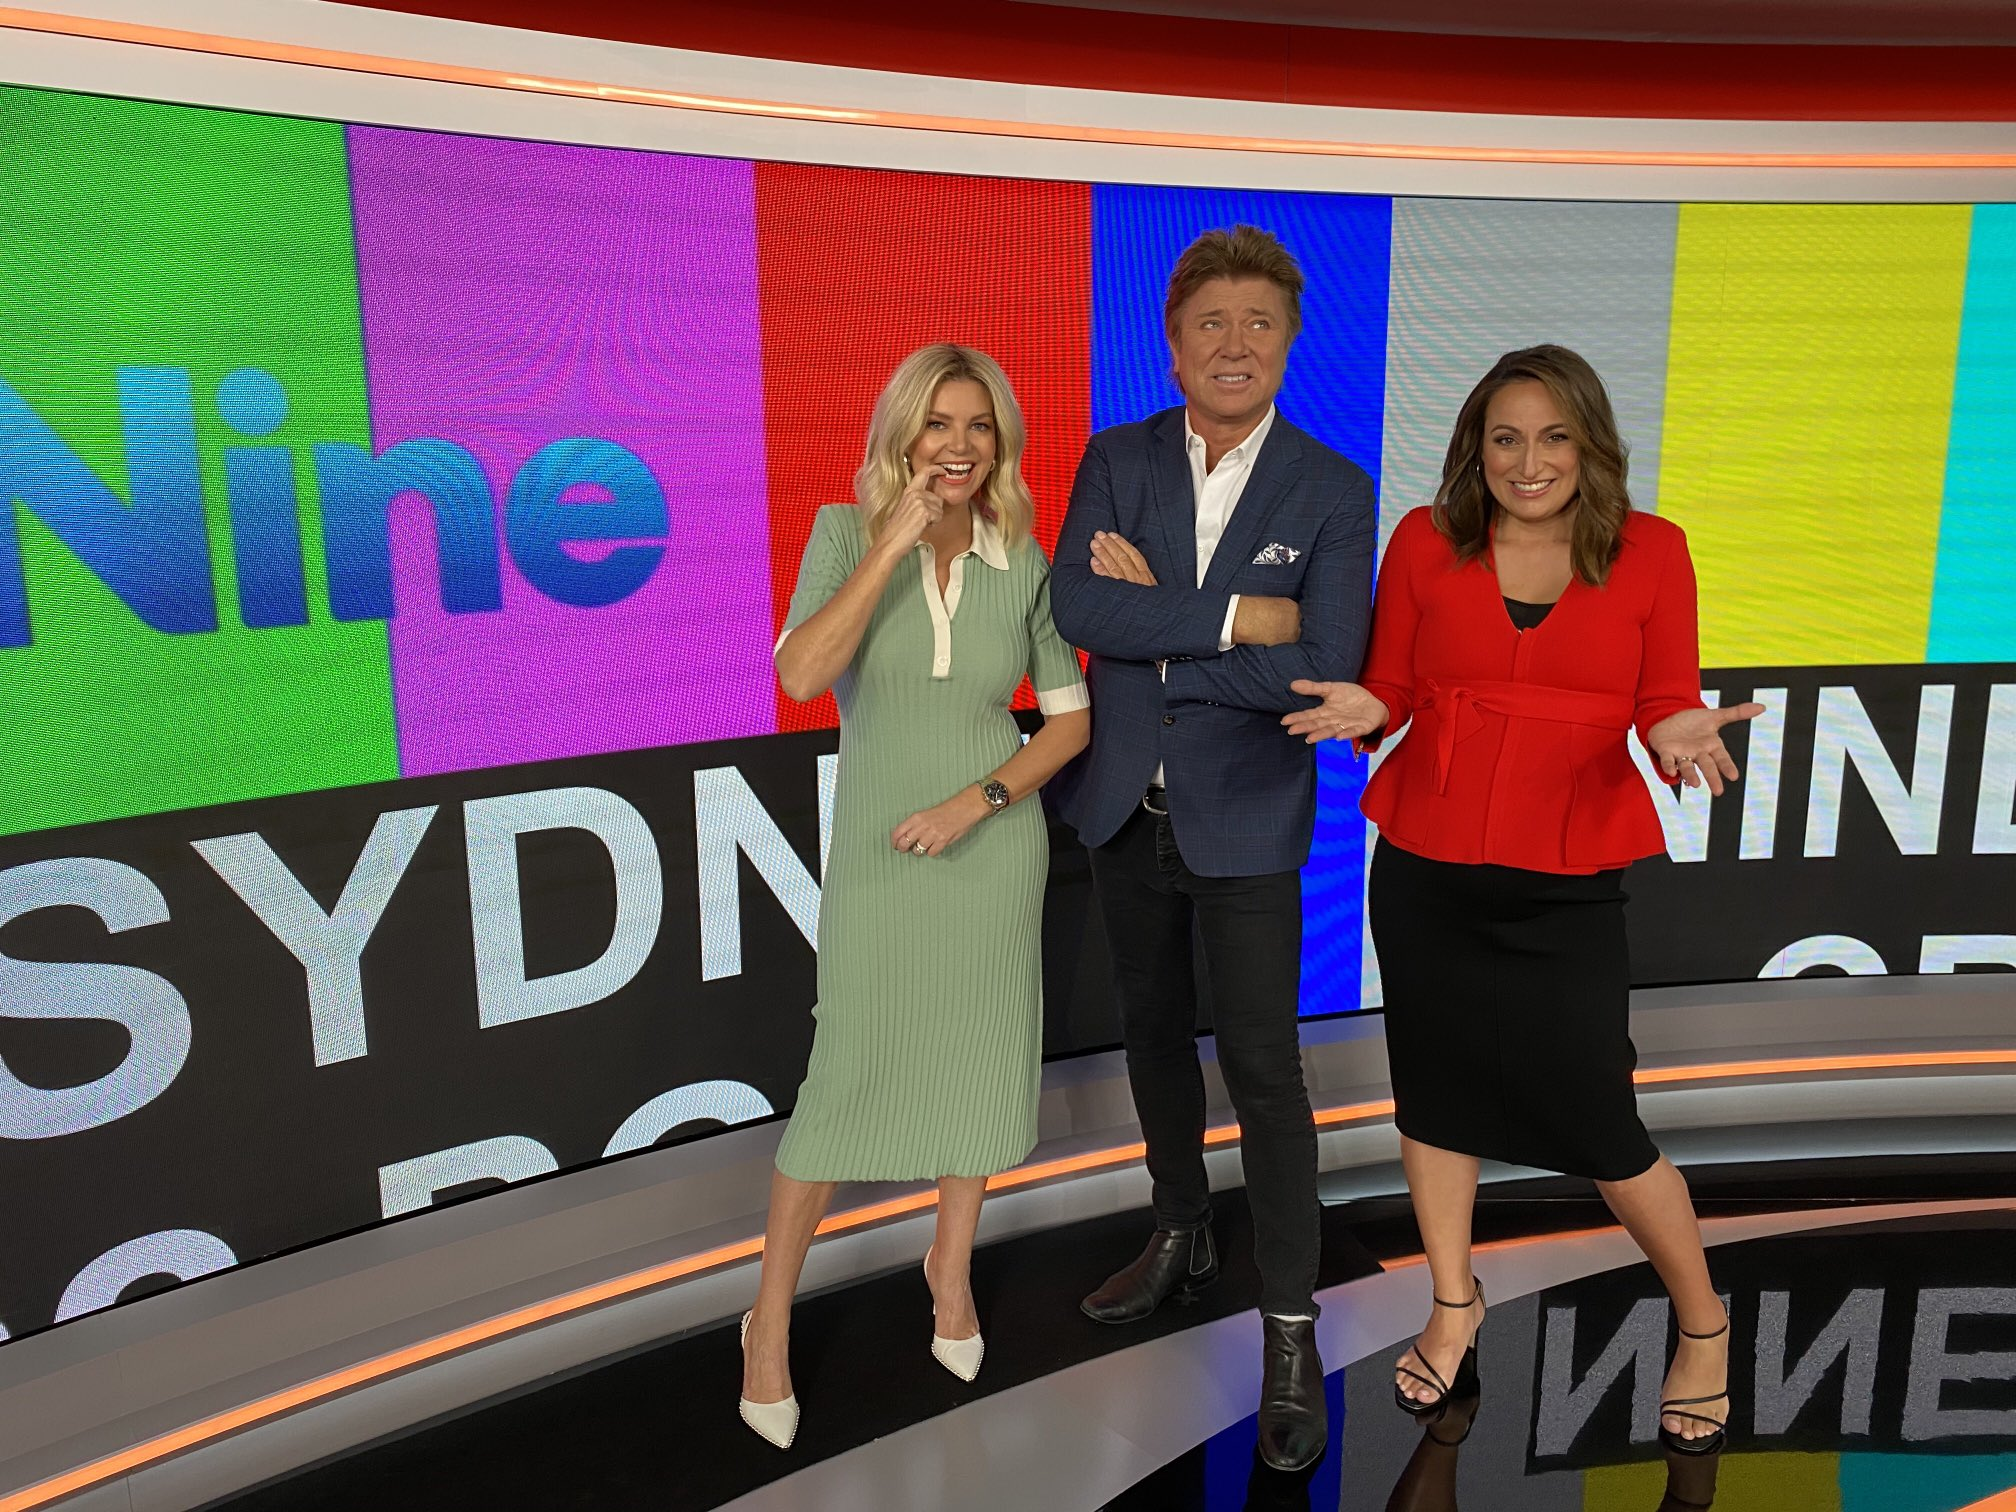 Australia's Channel 9 TV Suffers Cyberattack During Live Broadcast thumbnail